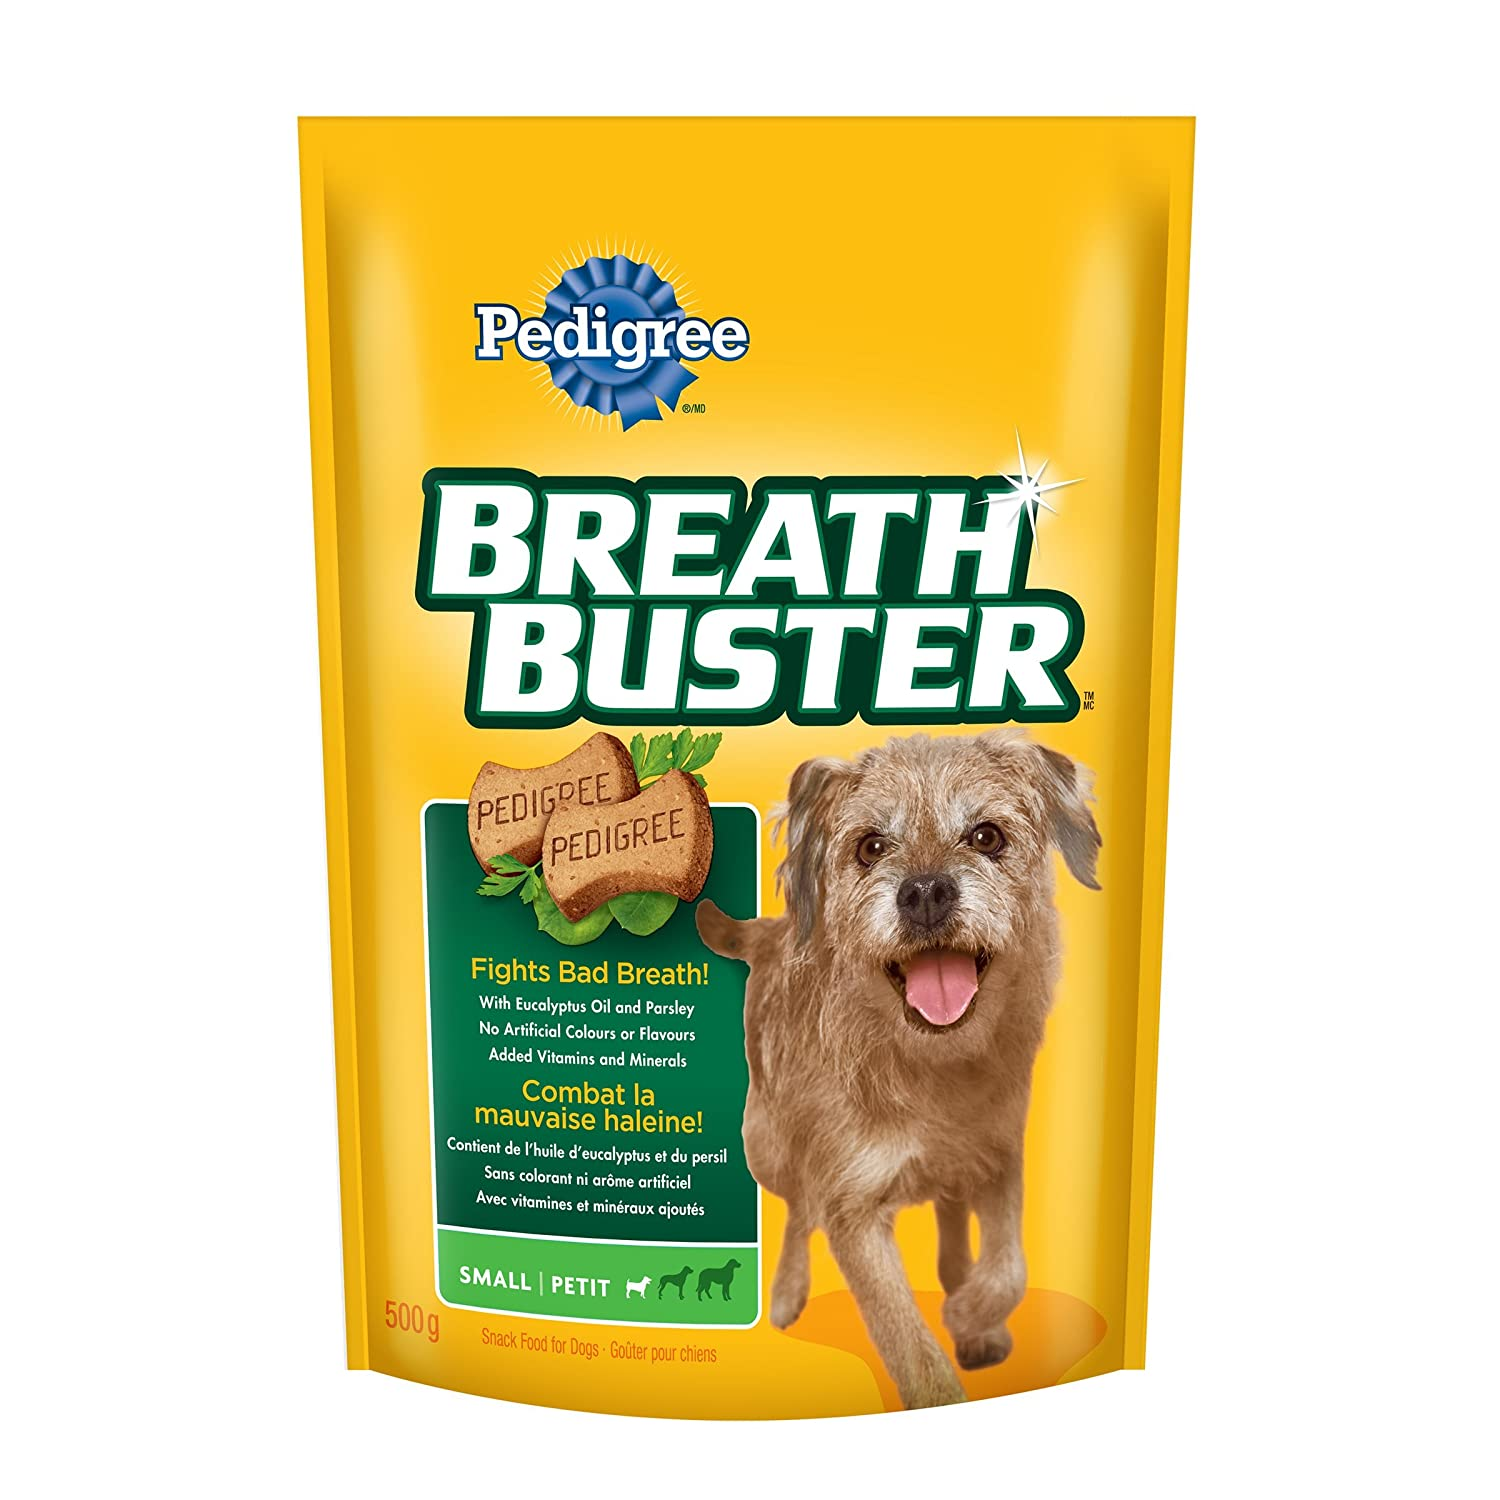 Pedigree Breathbuster Biscuit Treats for Dogs 0 23100 01451 7